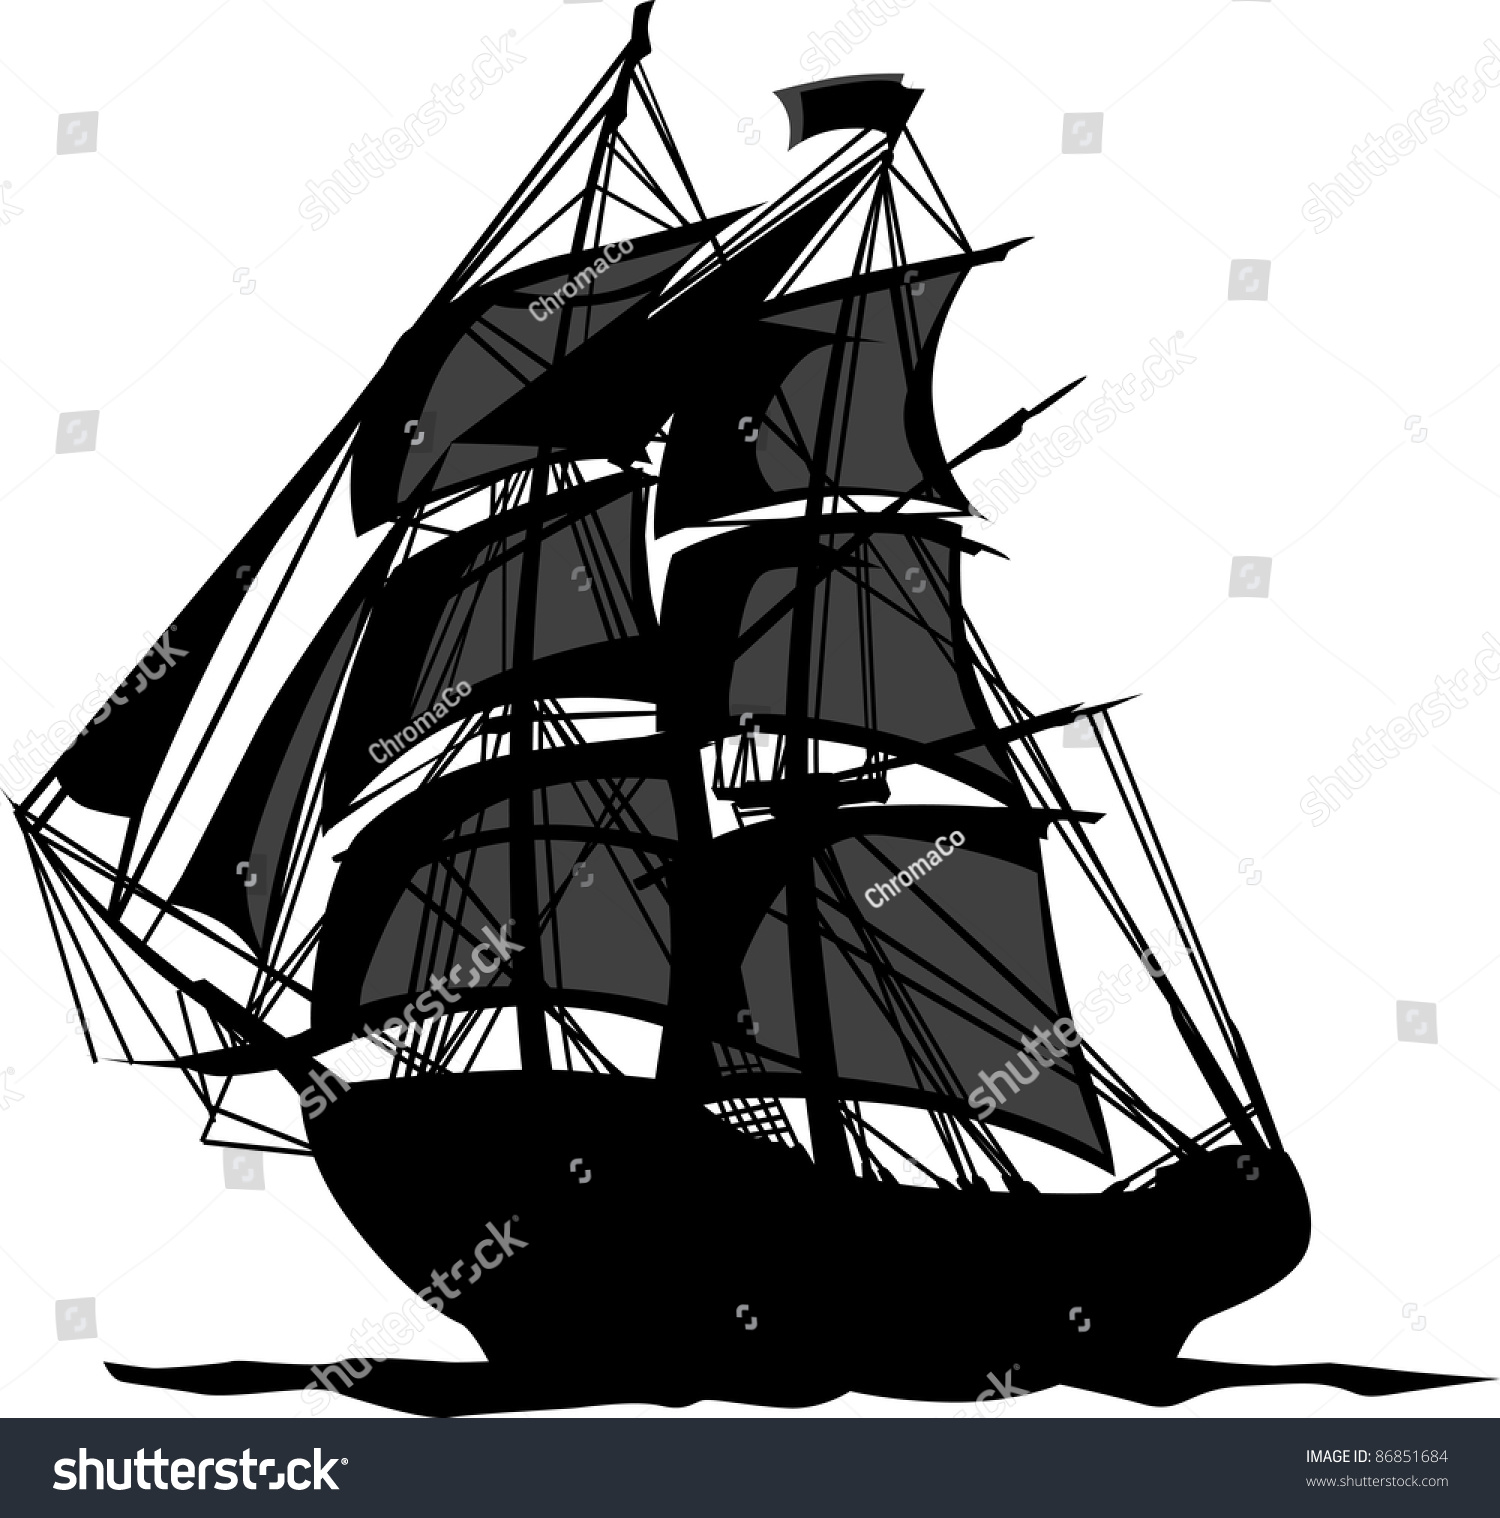 Sailing Pirate Ship With Sails Graphic Vector Image ... Sailing Ship Vector